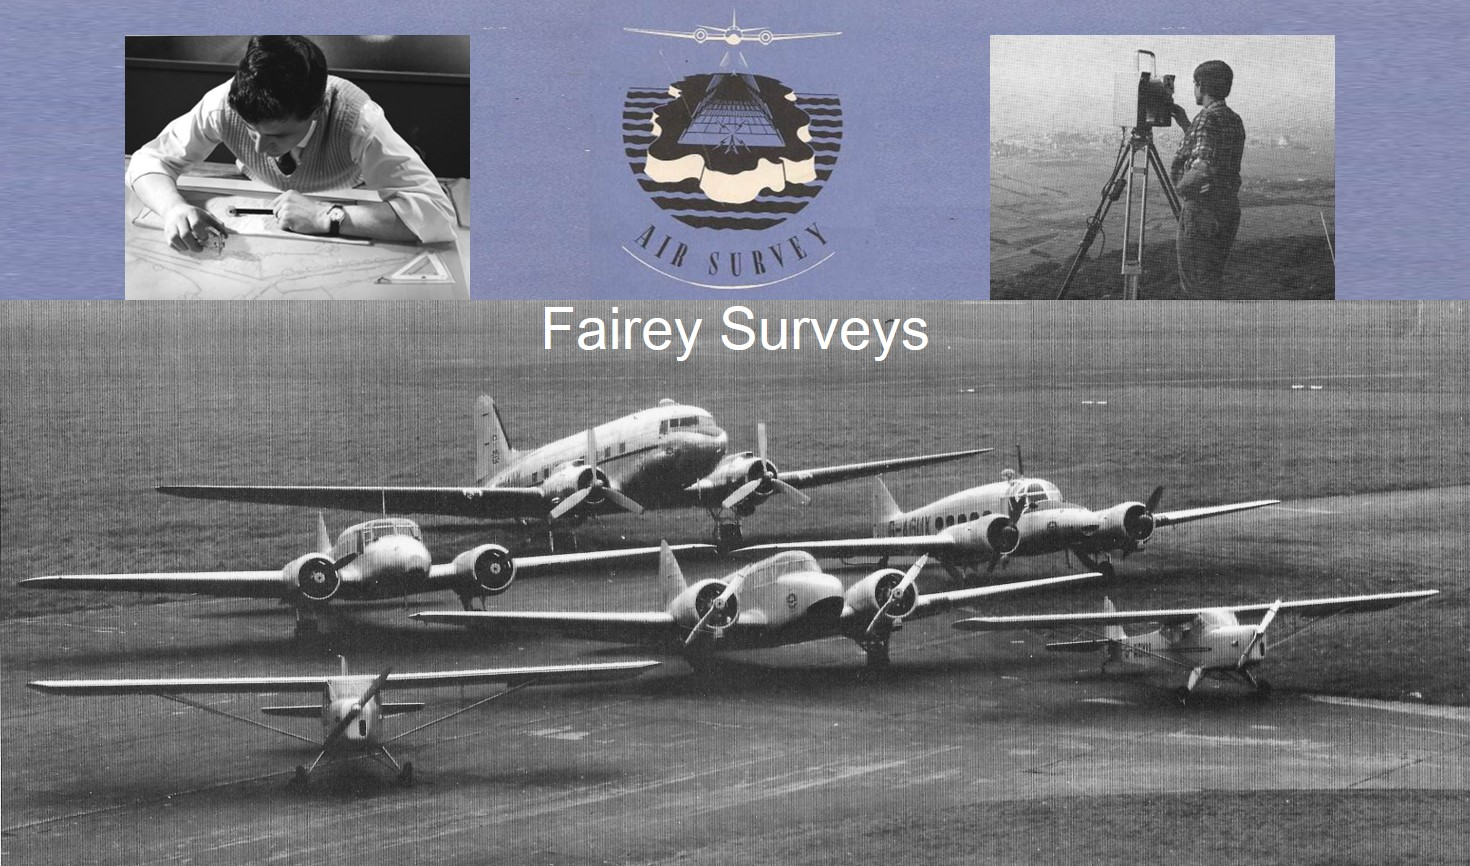 Fairey Surveys